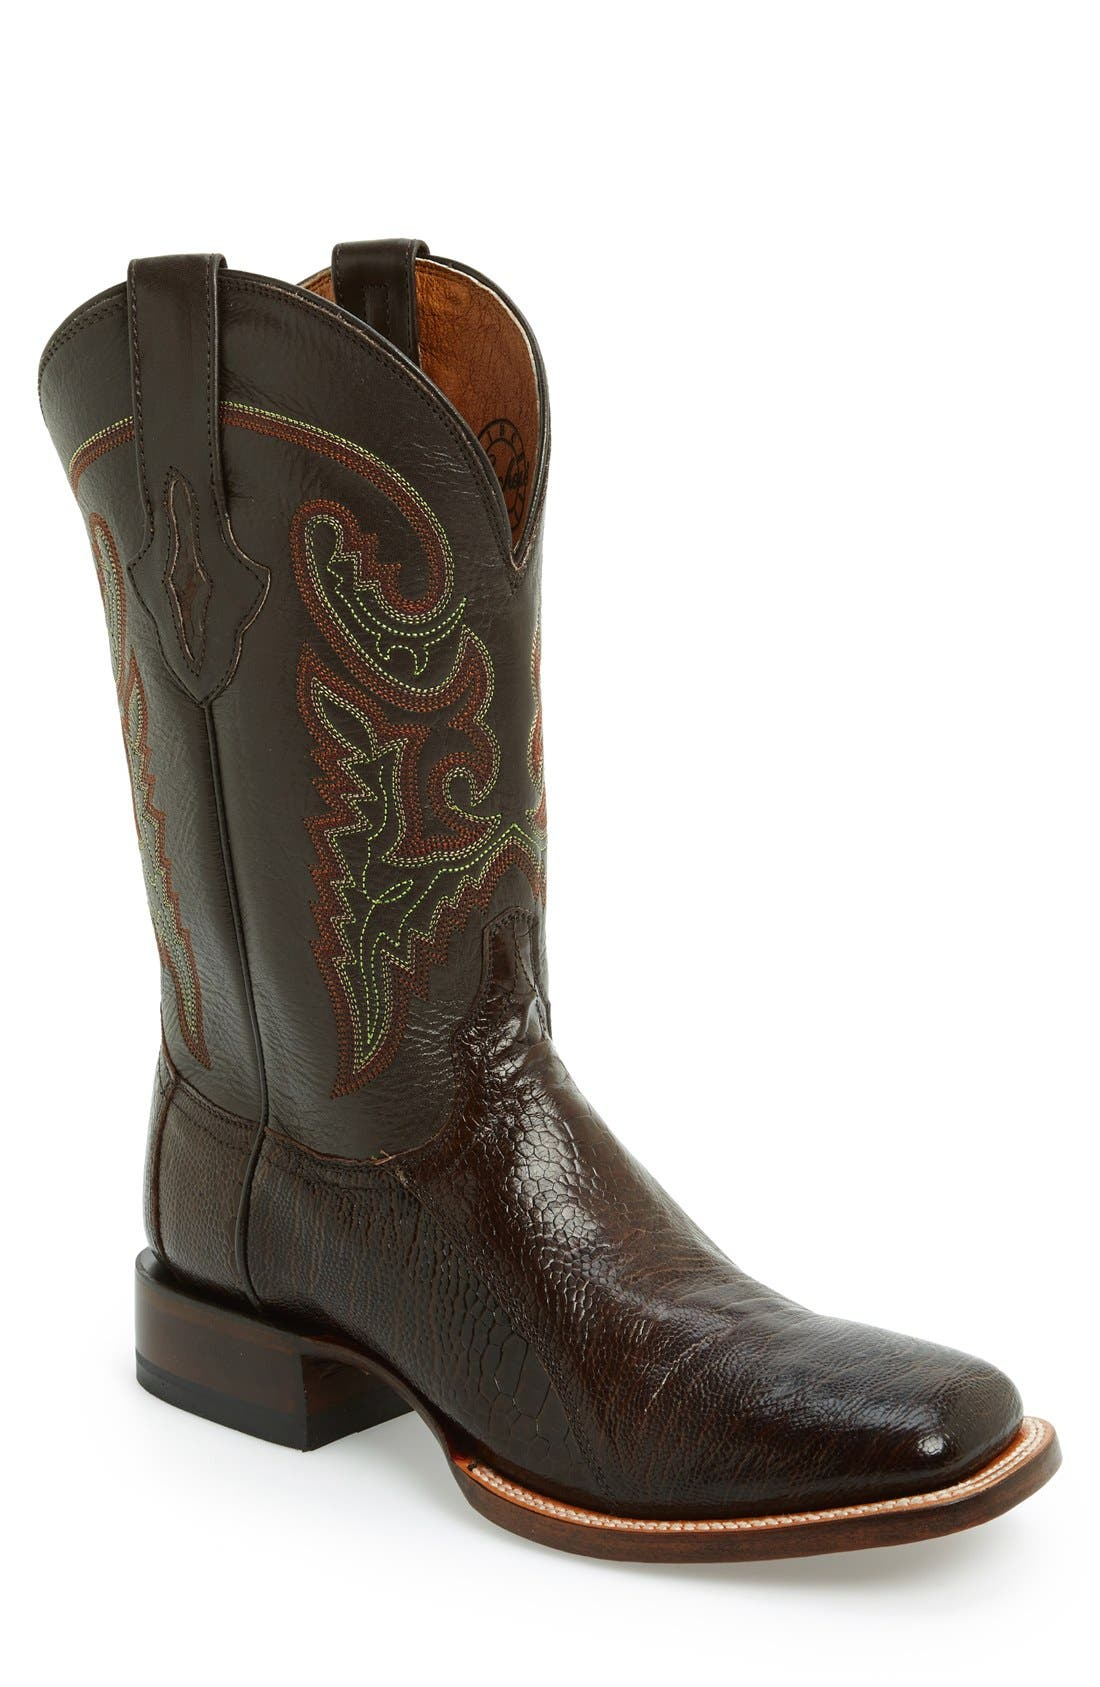 Alternate Image 1 Selected - Lucchese Square Toe Leather Boot (Men)